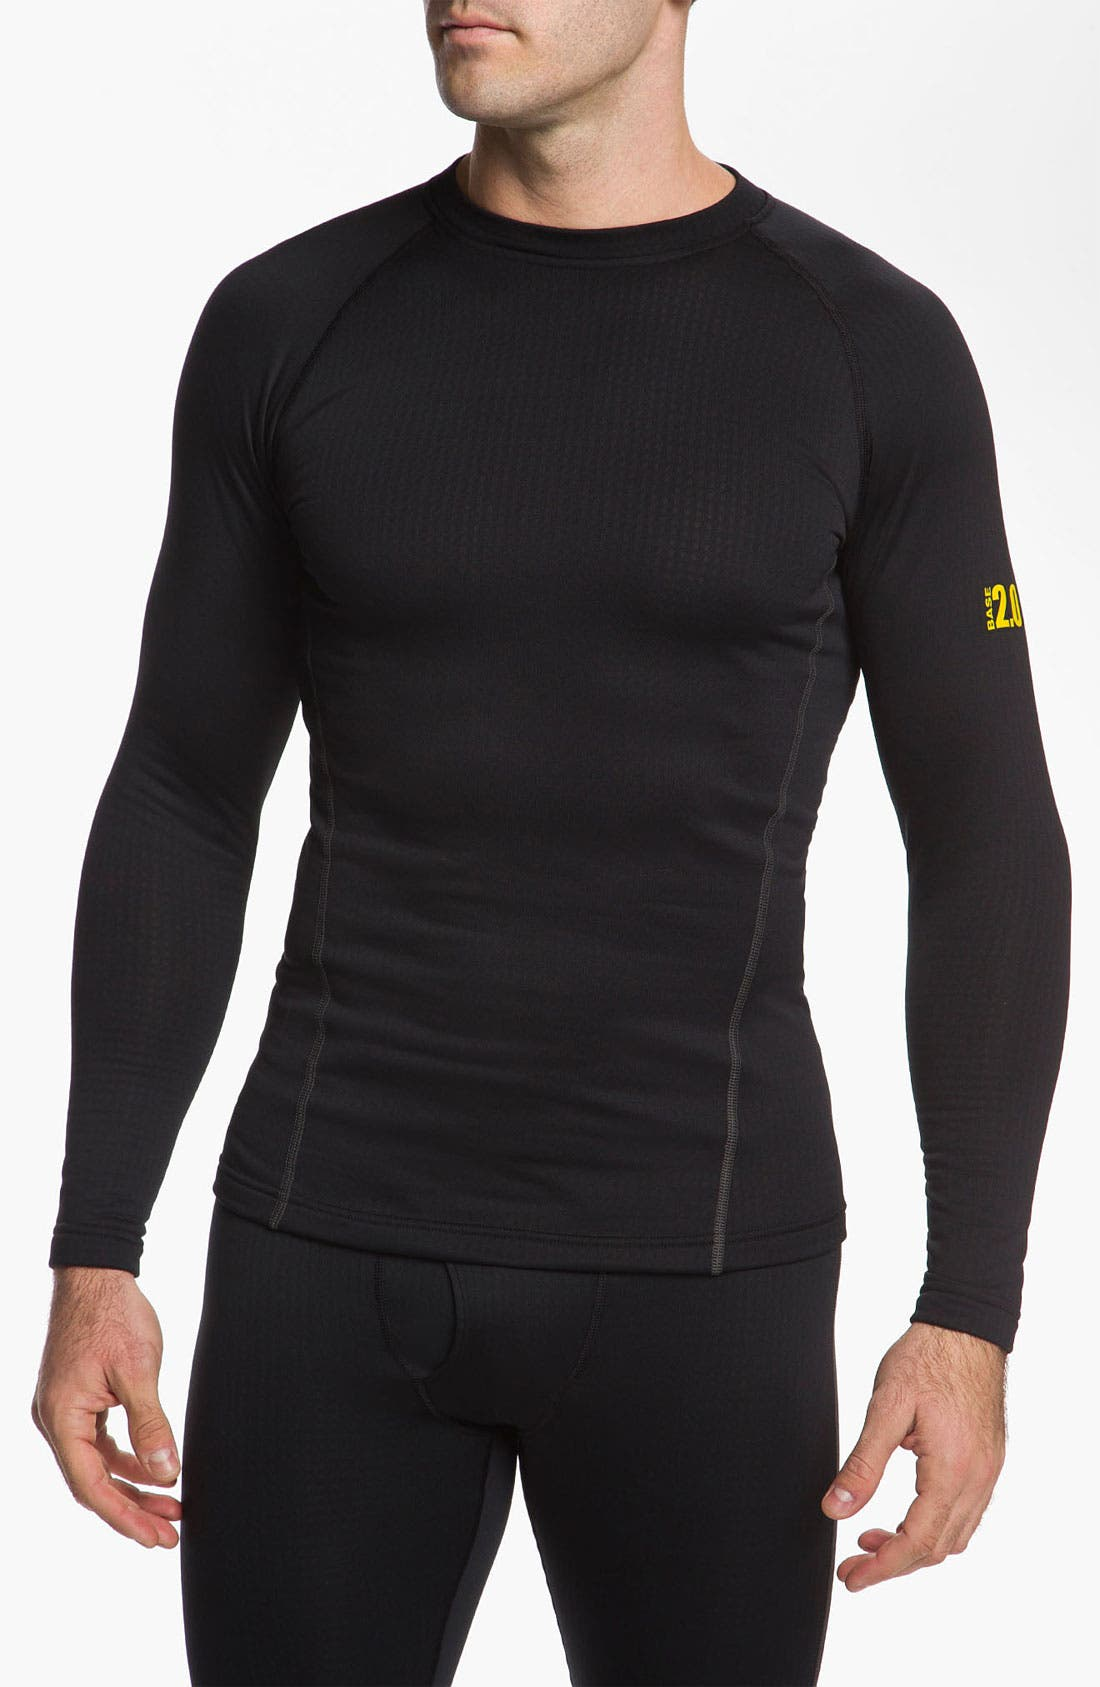 Main Image - Under Armour 'Base 2.0' Fitted Crewneck Top (Online Only)